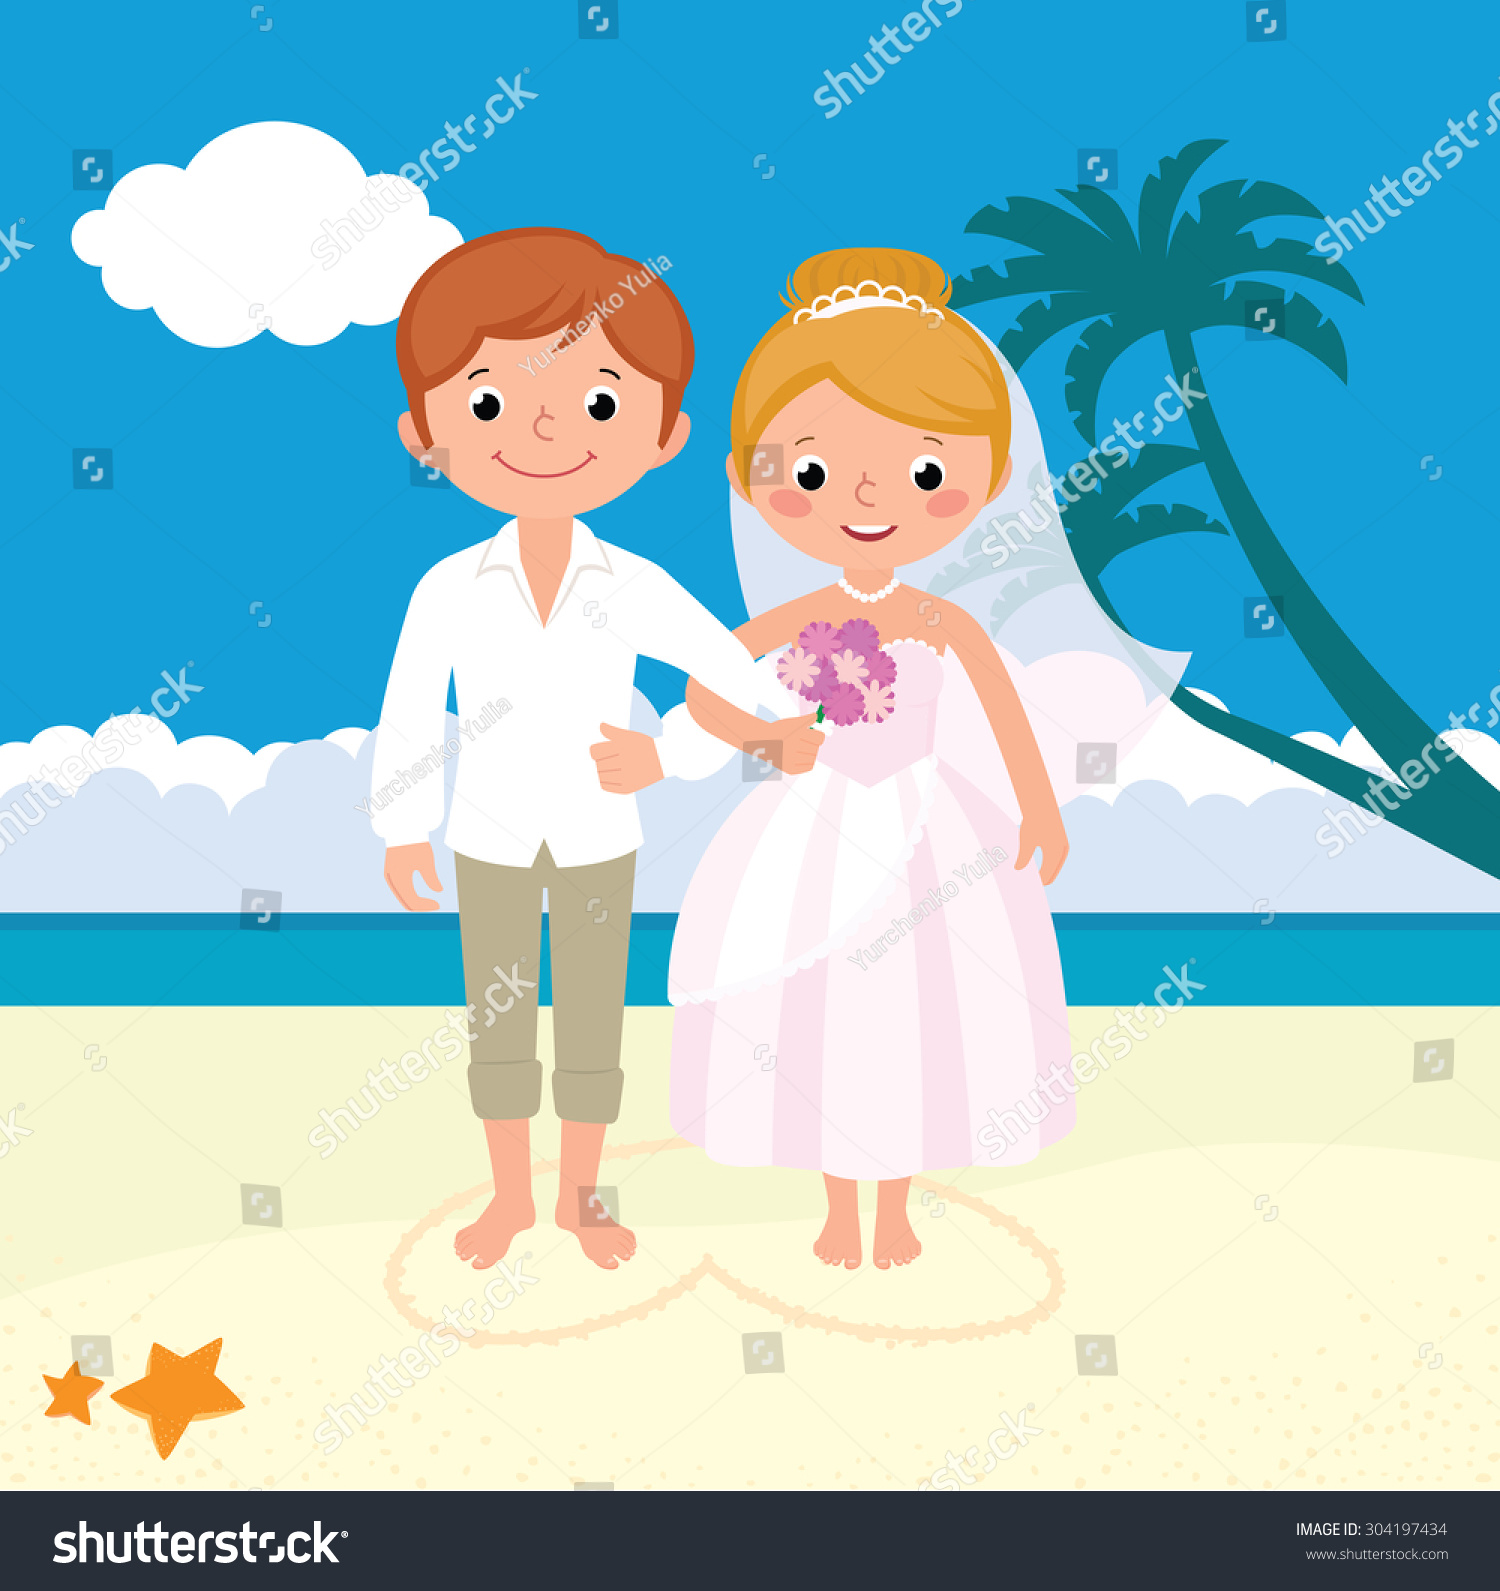 Stock Vector Illustration Wedding Newly Married Stock